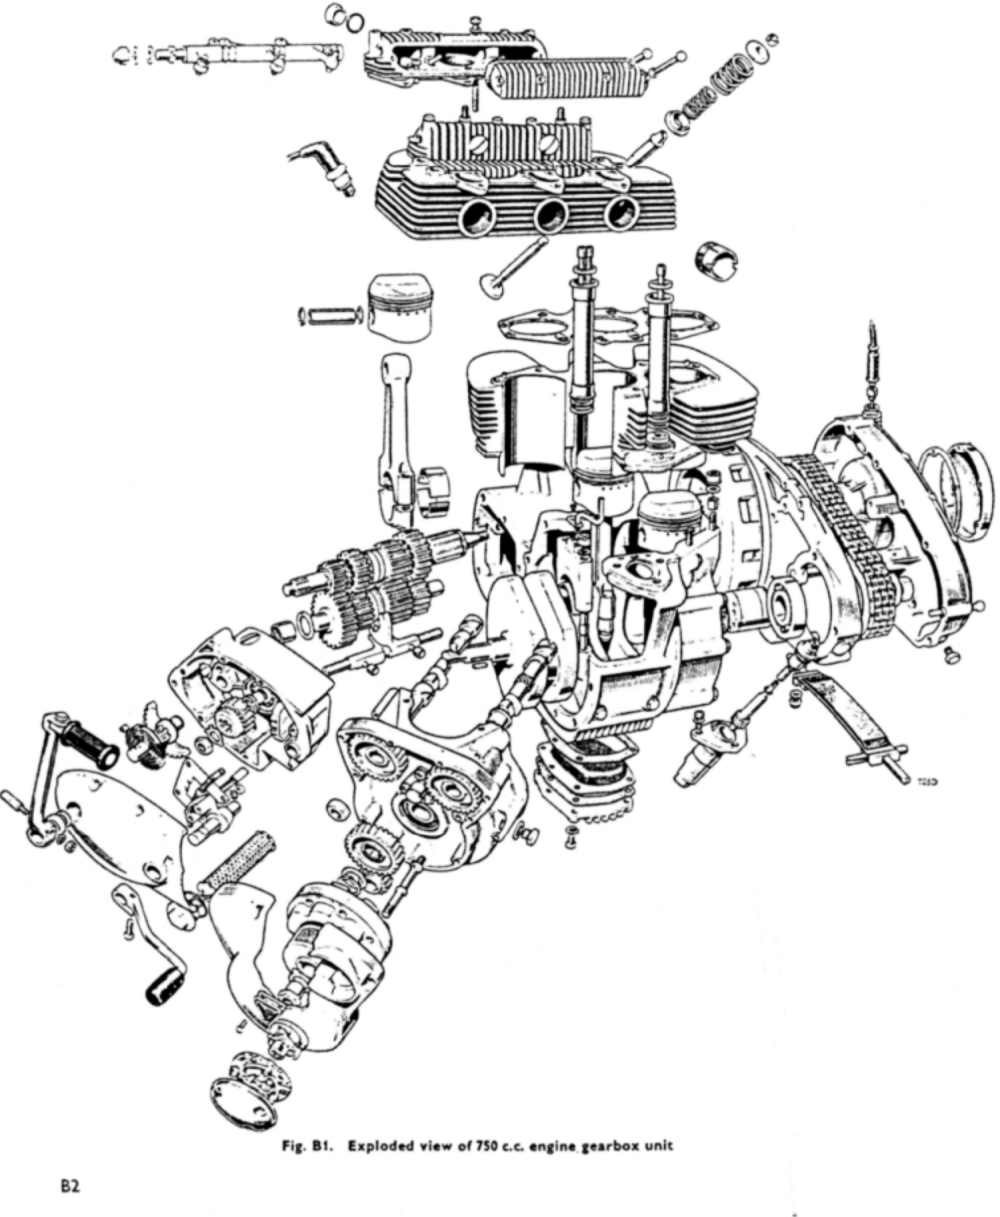 1947 Harley Davidson Wiring Diagram Auto Electrical For Ktm 450